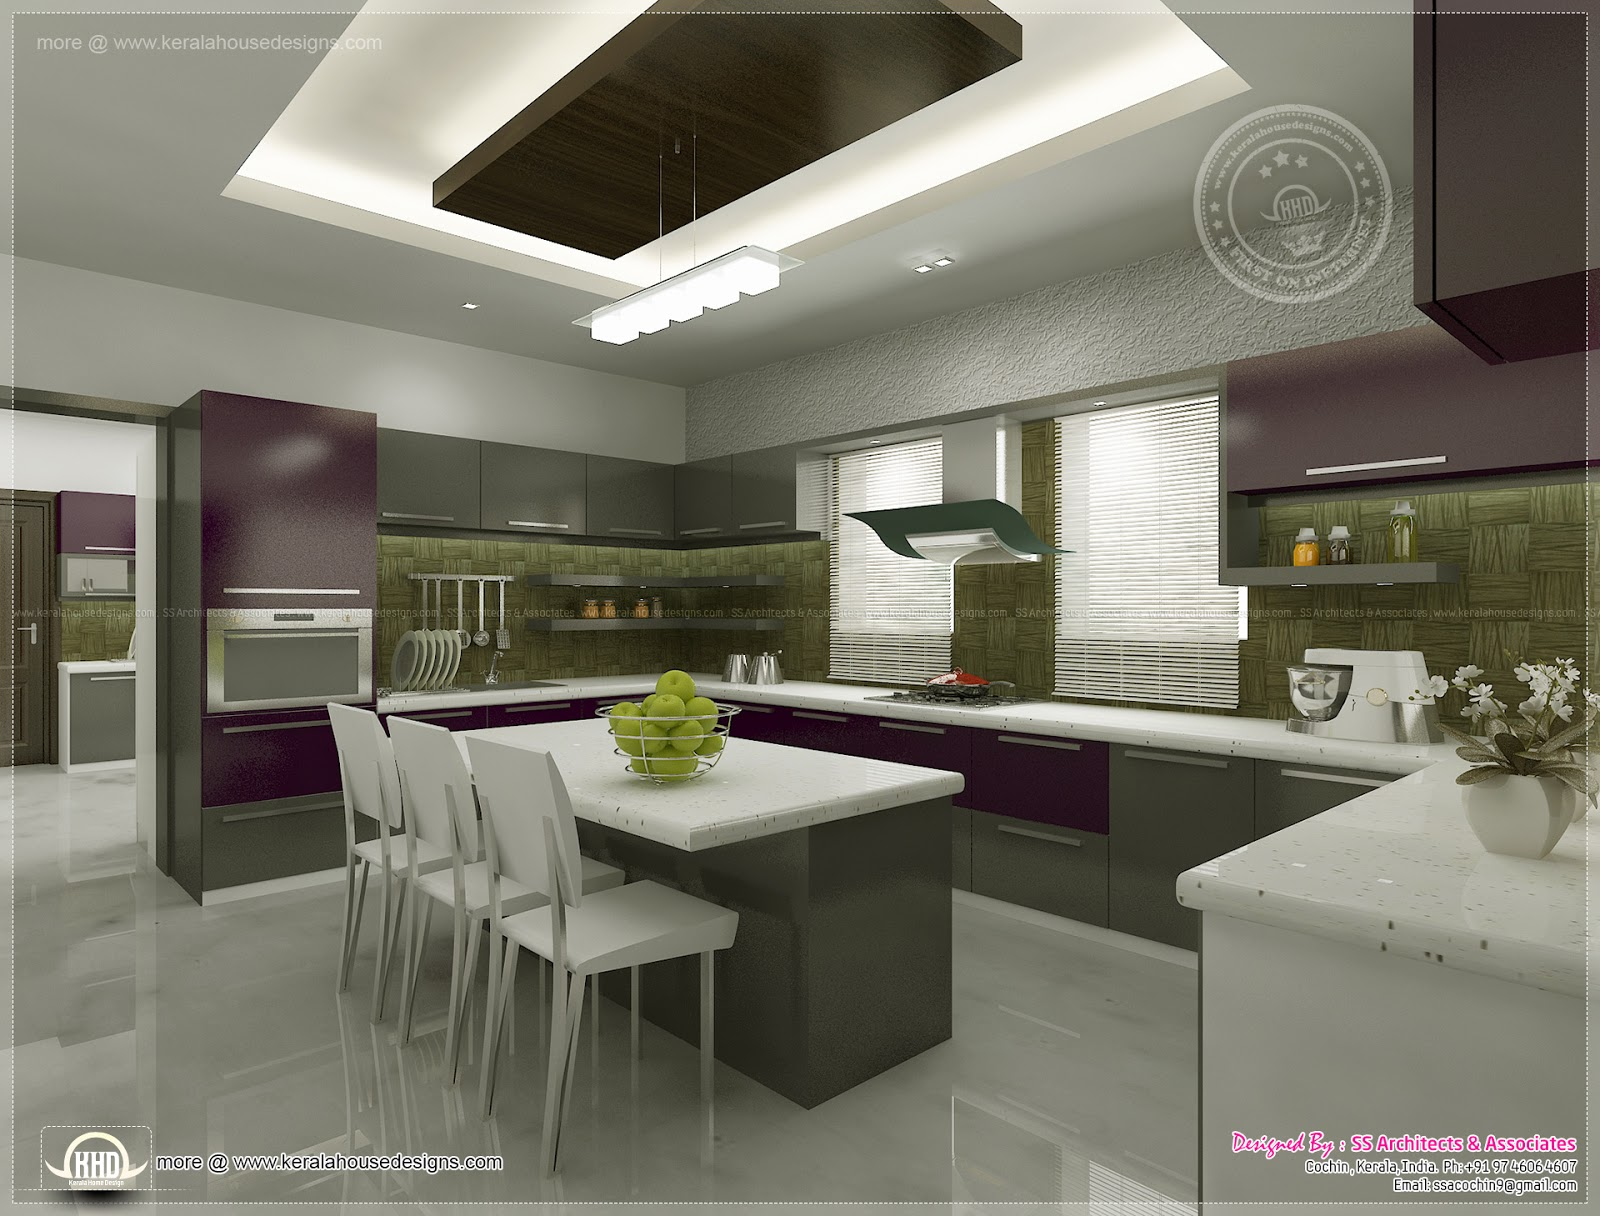 Kitchen interior views by SS Architects, Cochin